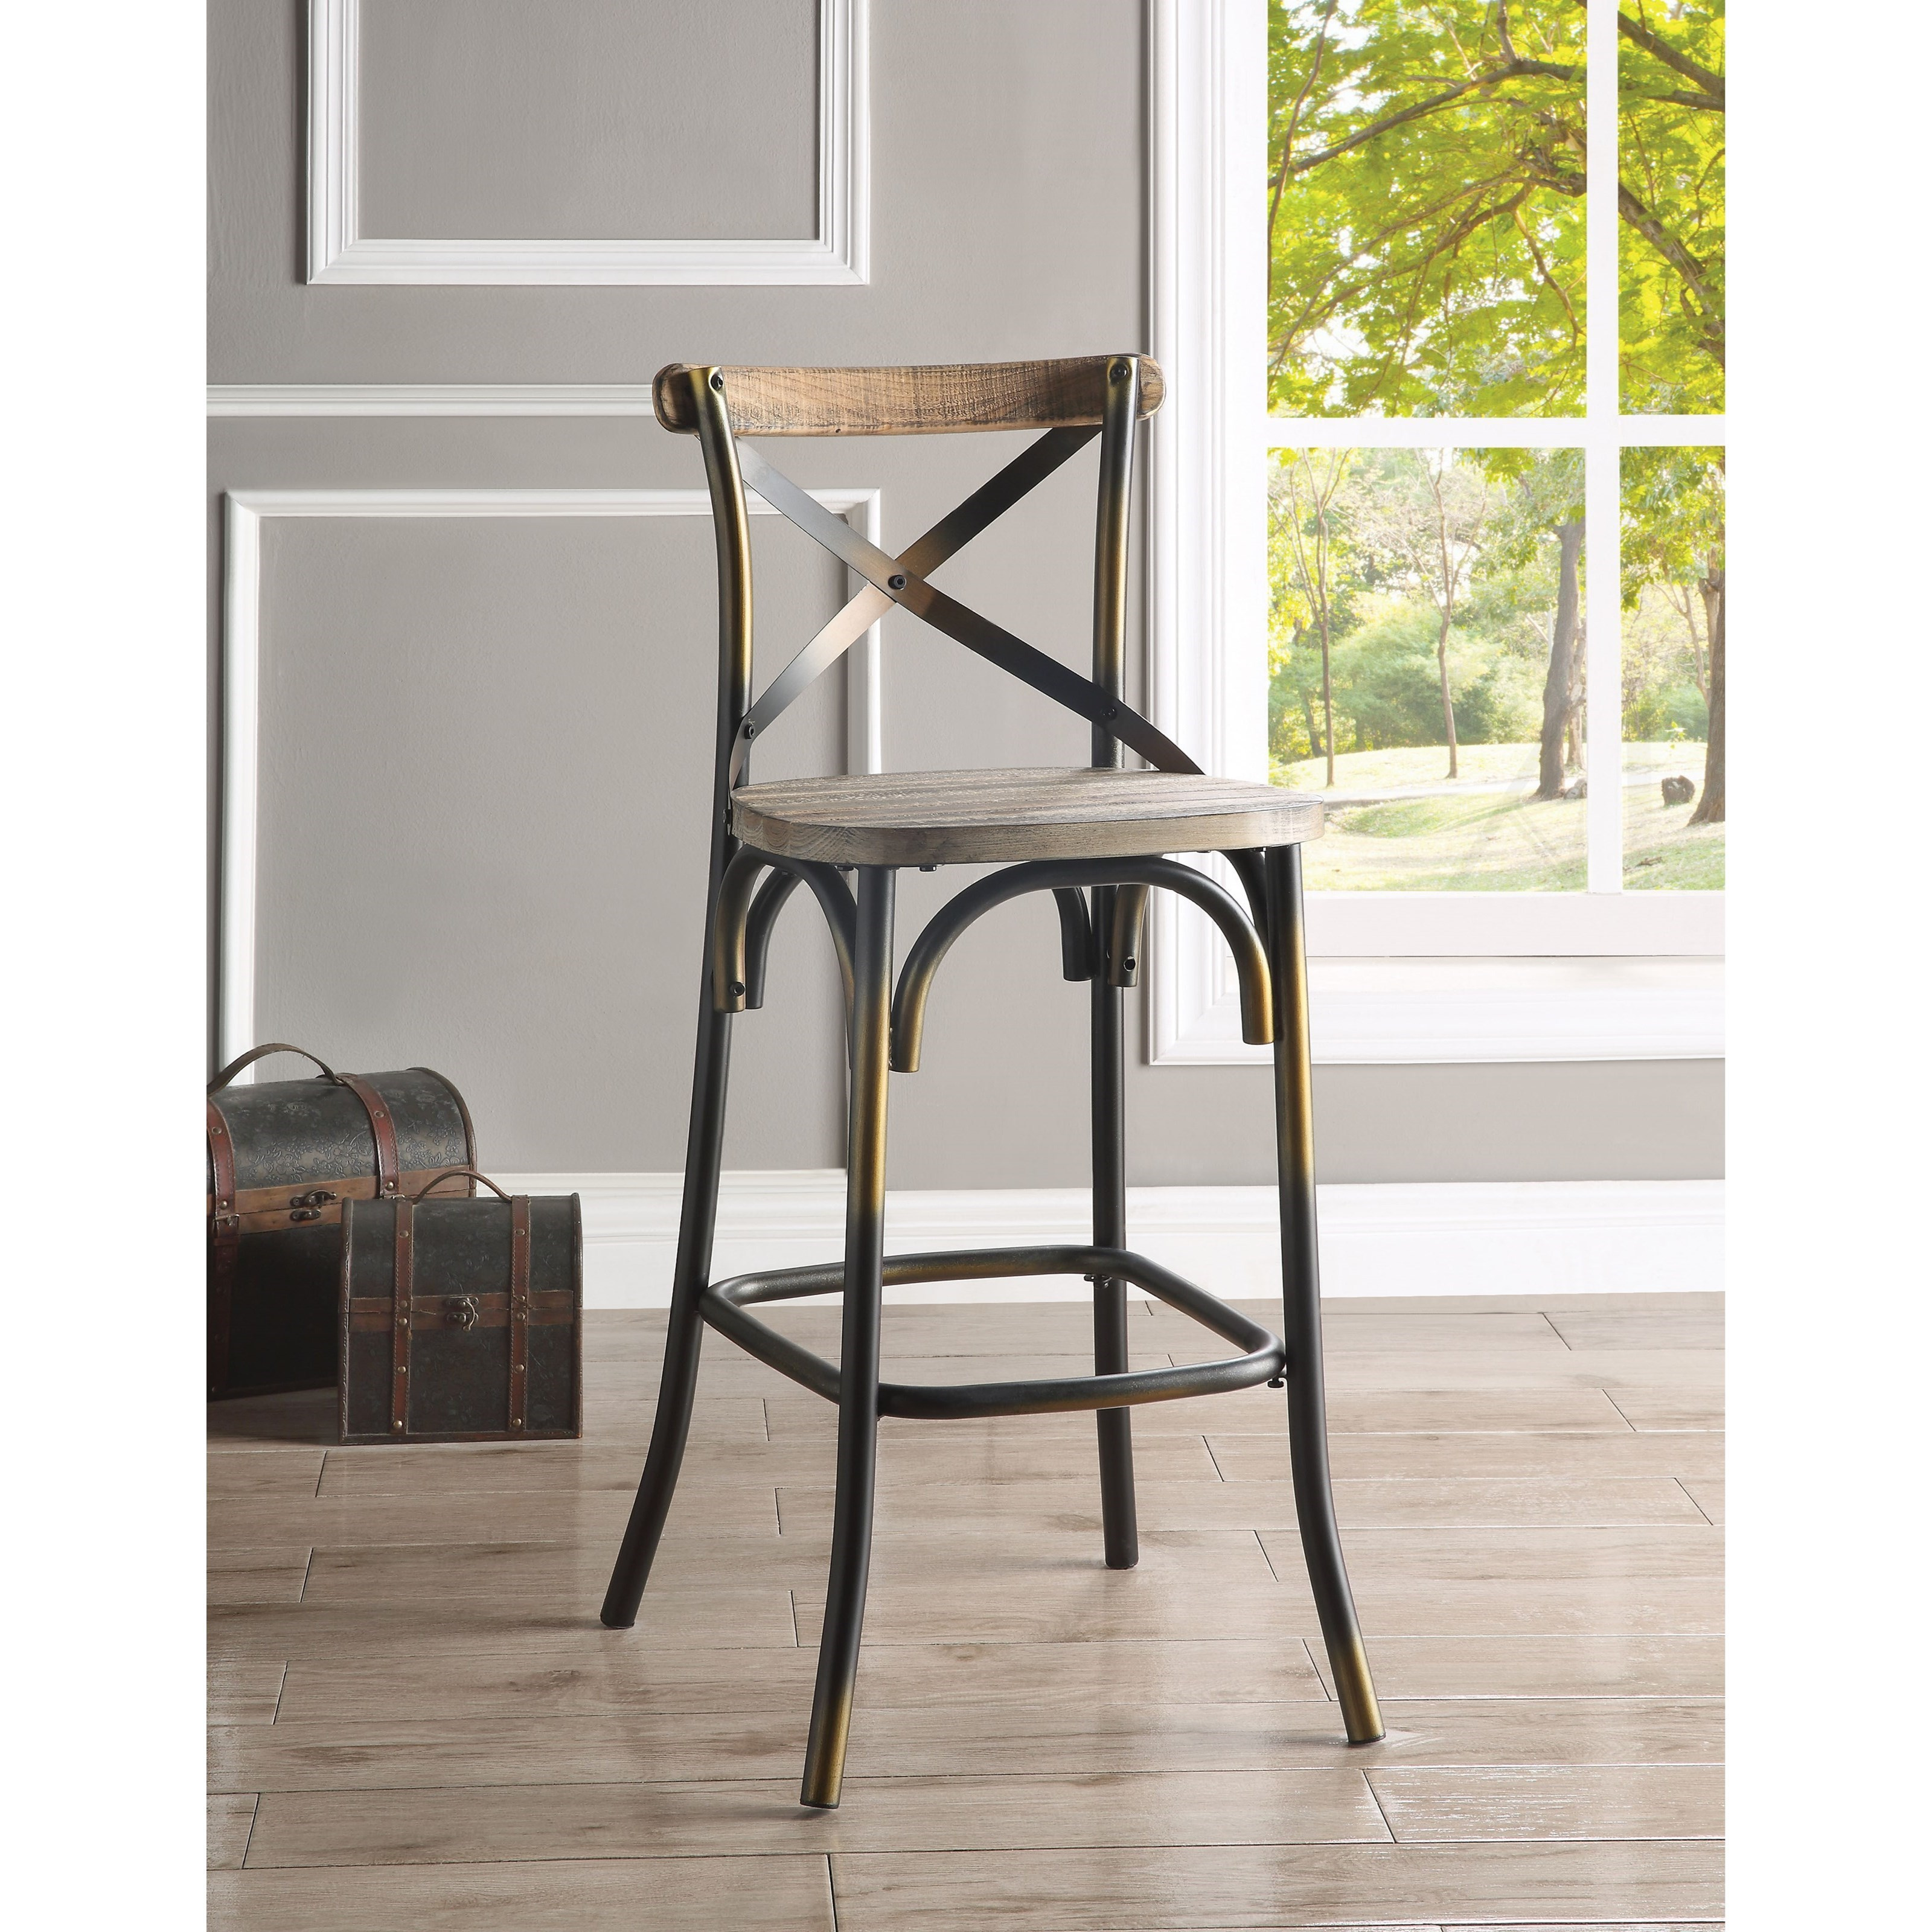 Industrial Metal Counter Height Bar Stool with Wood Seat